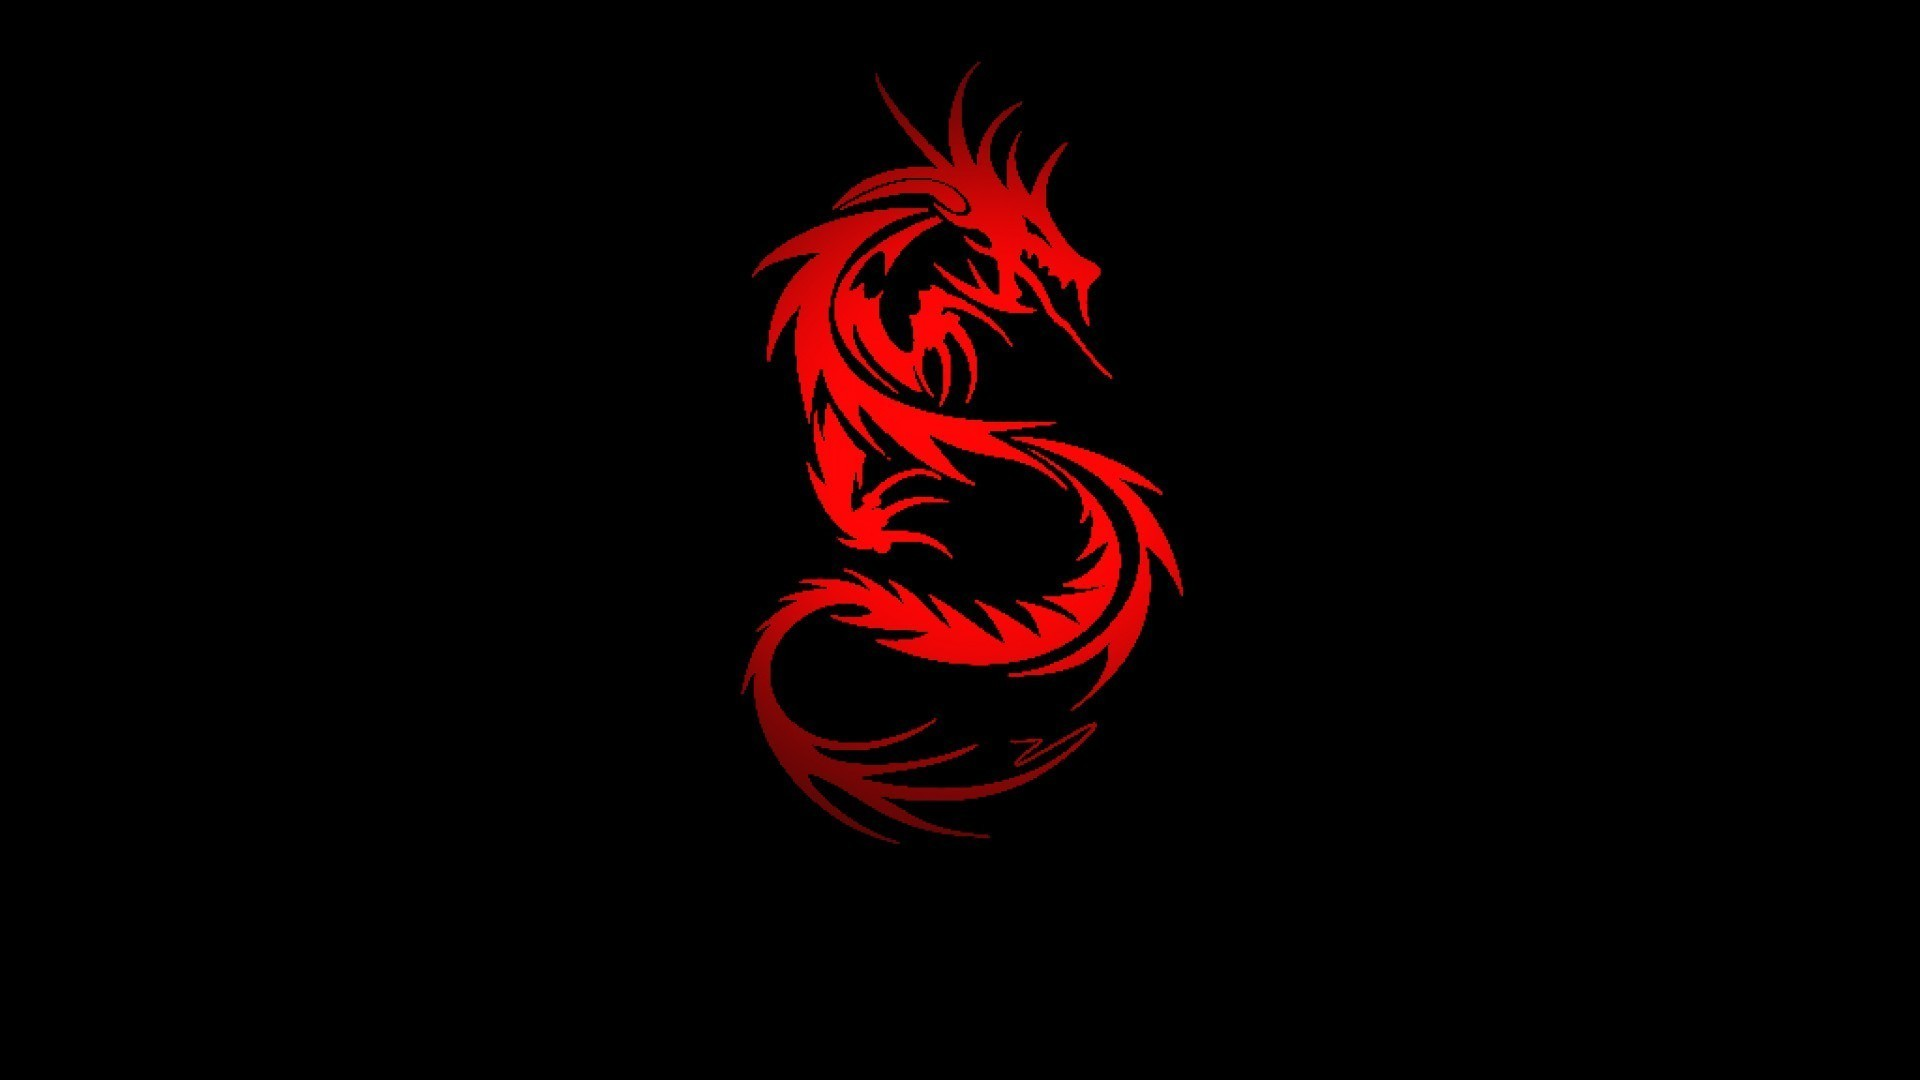 1920x1080 Dragon Wallpaper Widescreen HD Wallpapers Opengavel High Resolution Fantasy Black Full Size